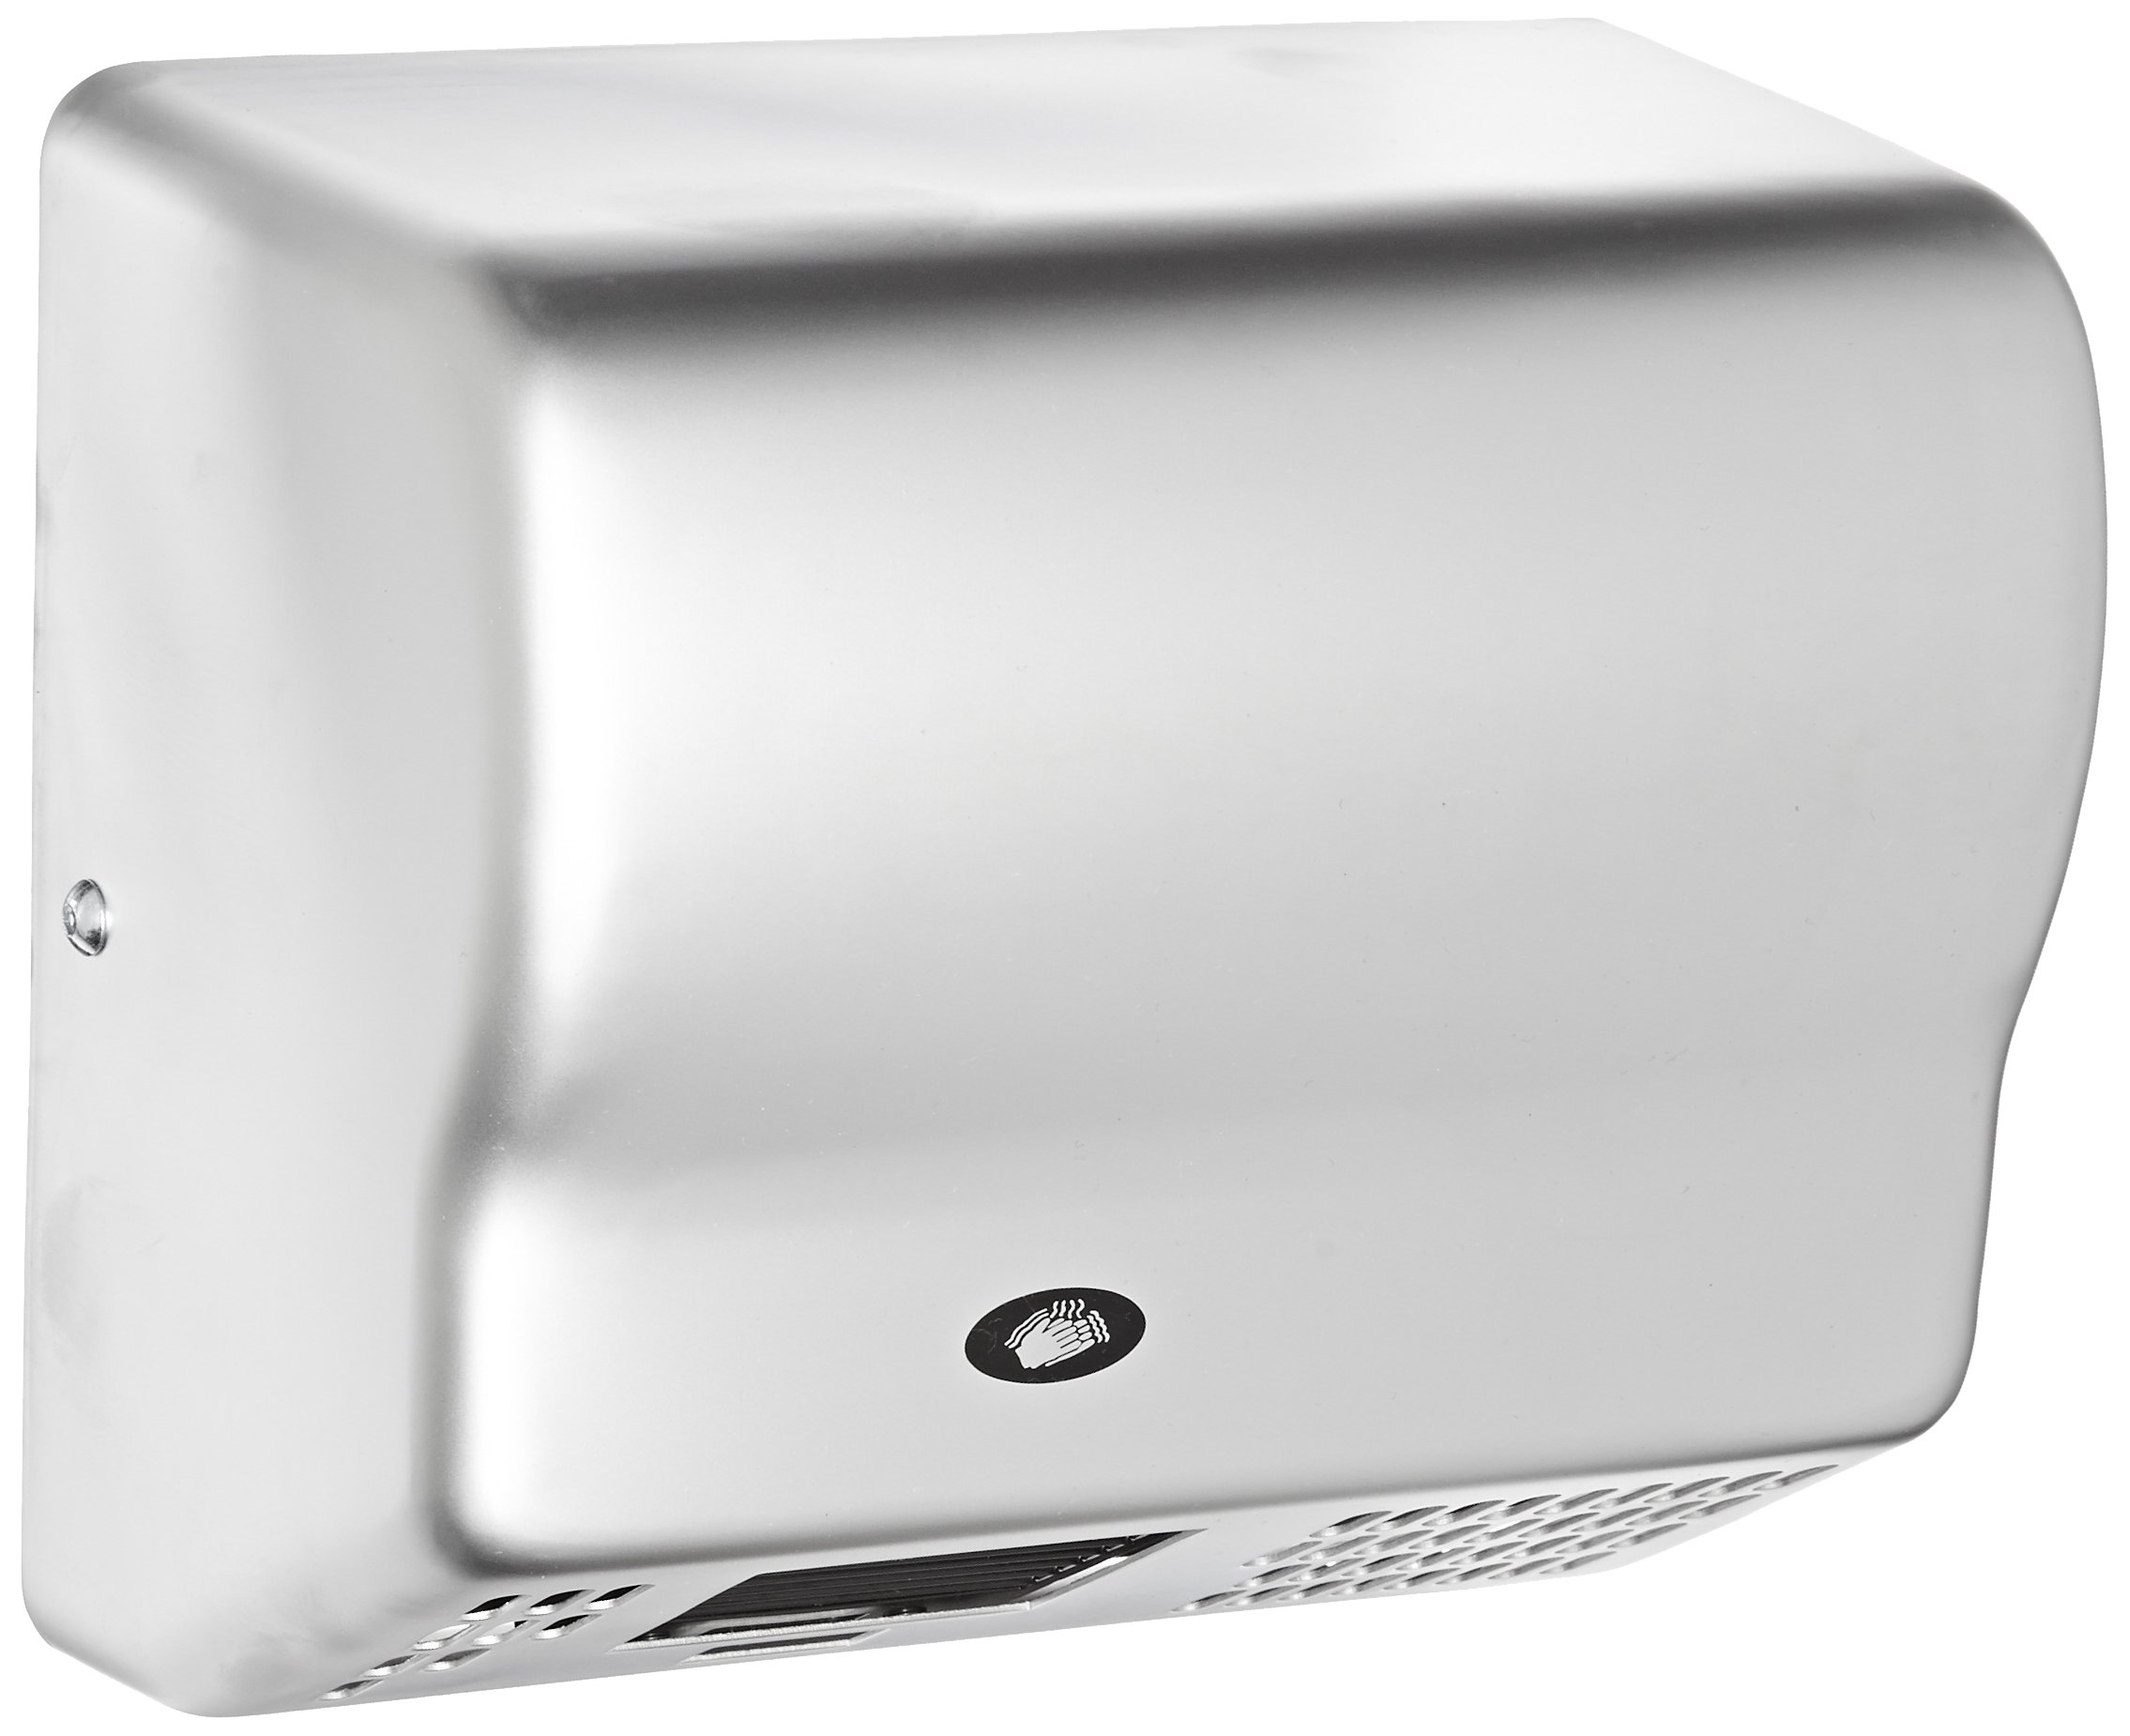 American Dryer Global GX1-C Steel Cover Automatic